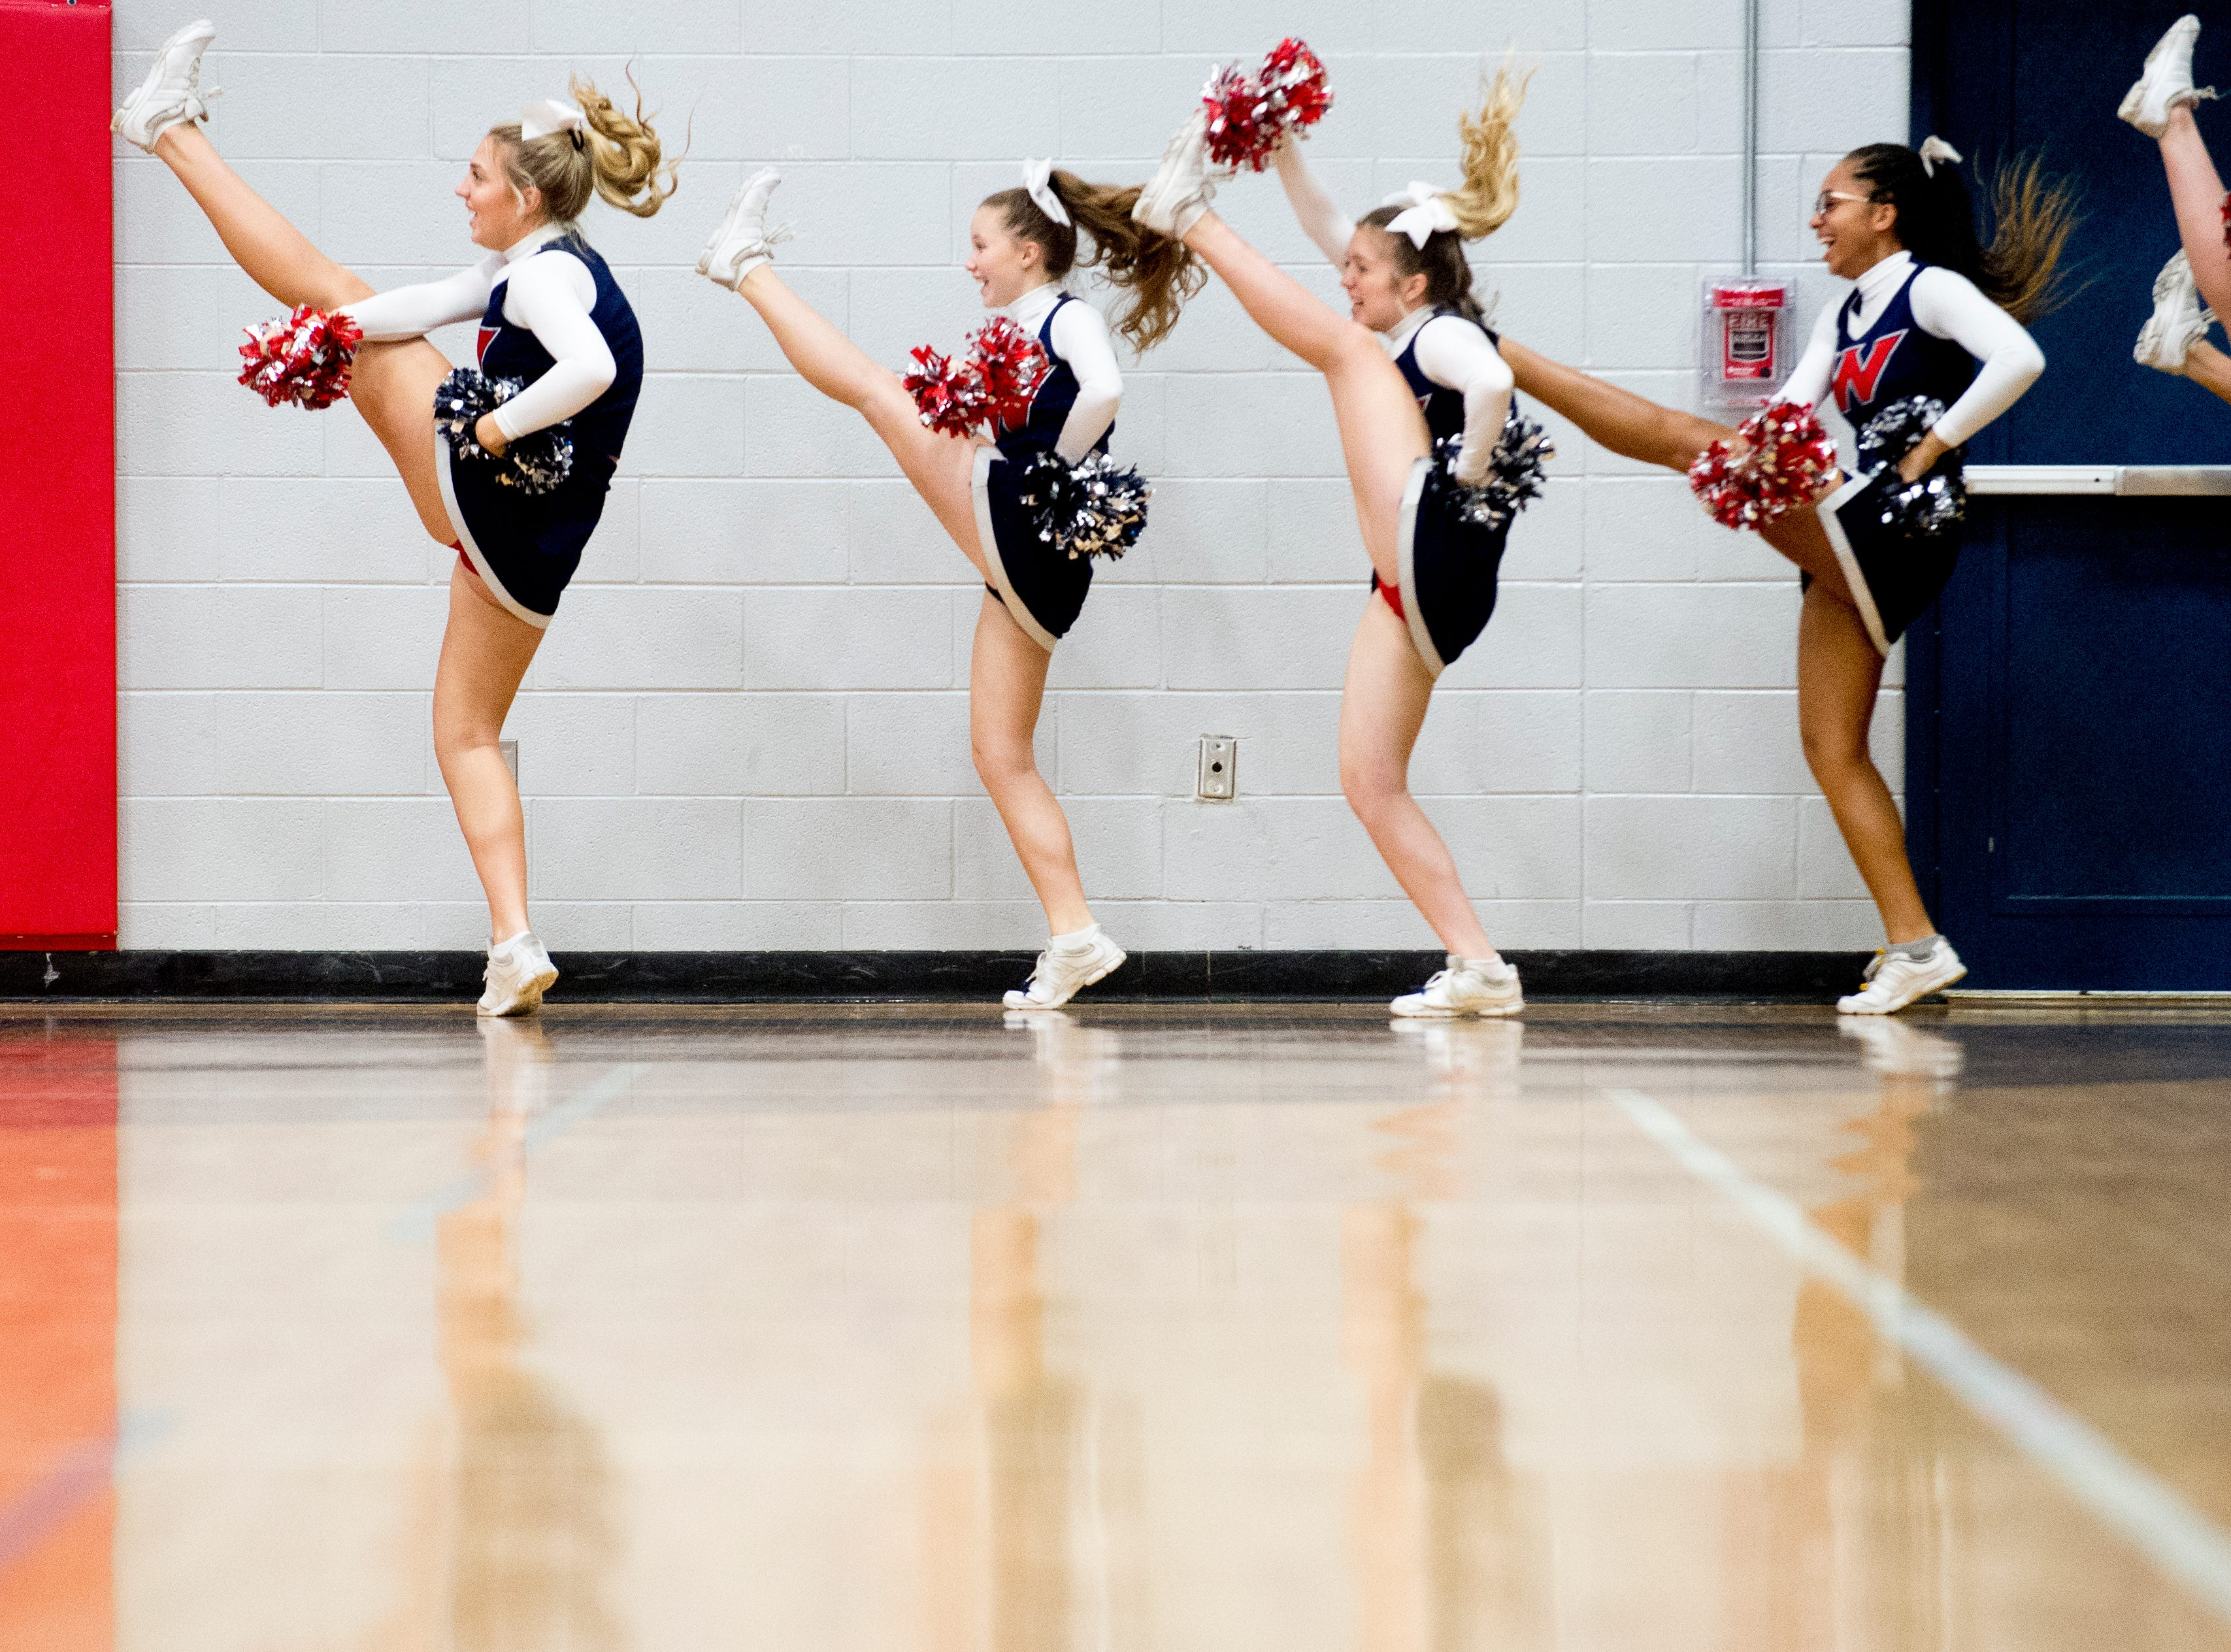 West High School cheerleaders cheer during a game between West and Webb at West High School in Knoxville, Tennessee on Friday, January 4, 2019.